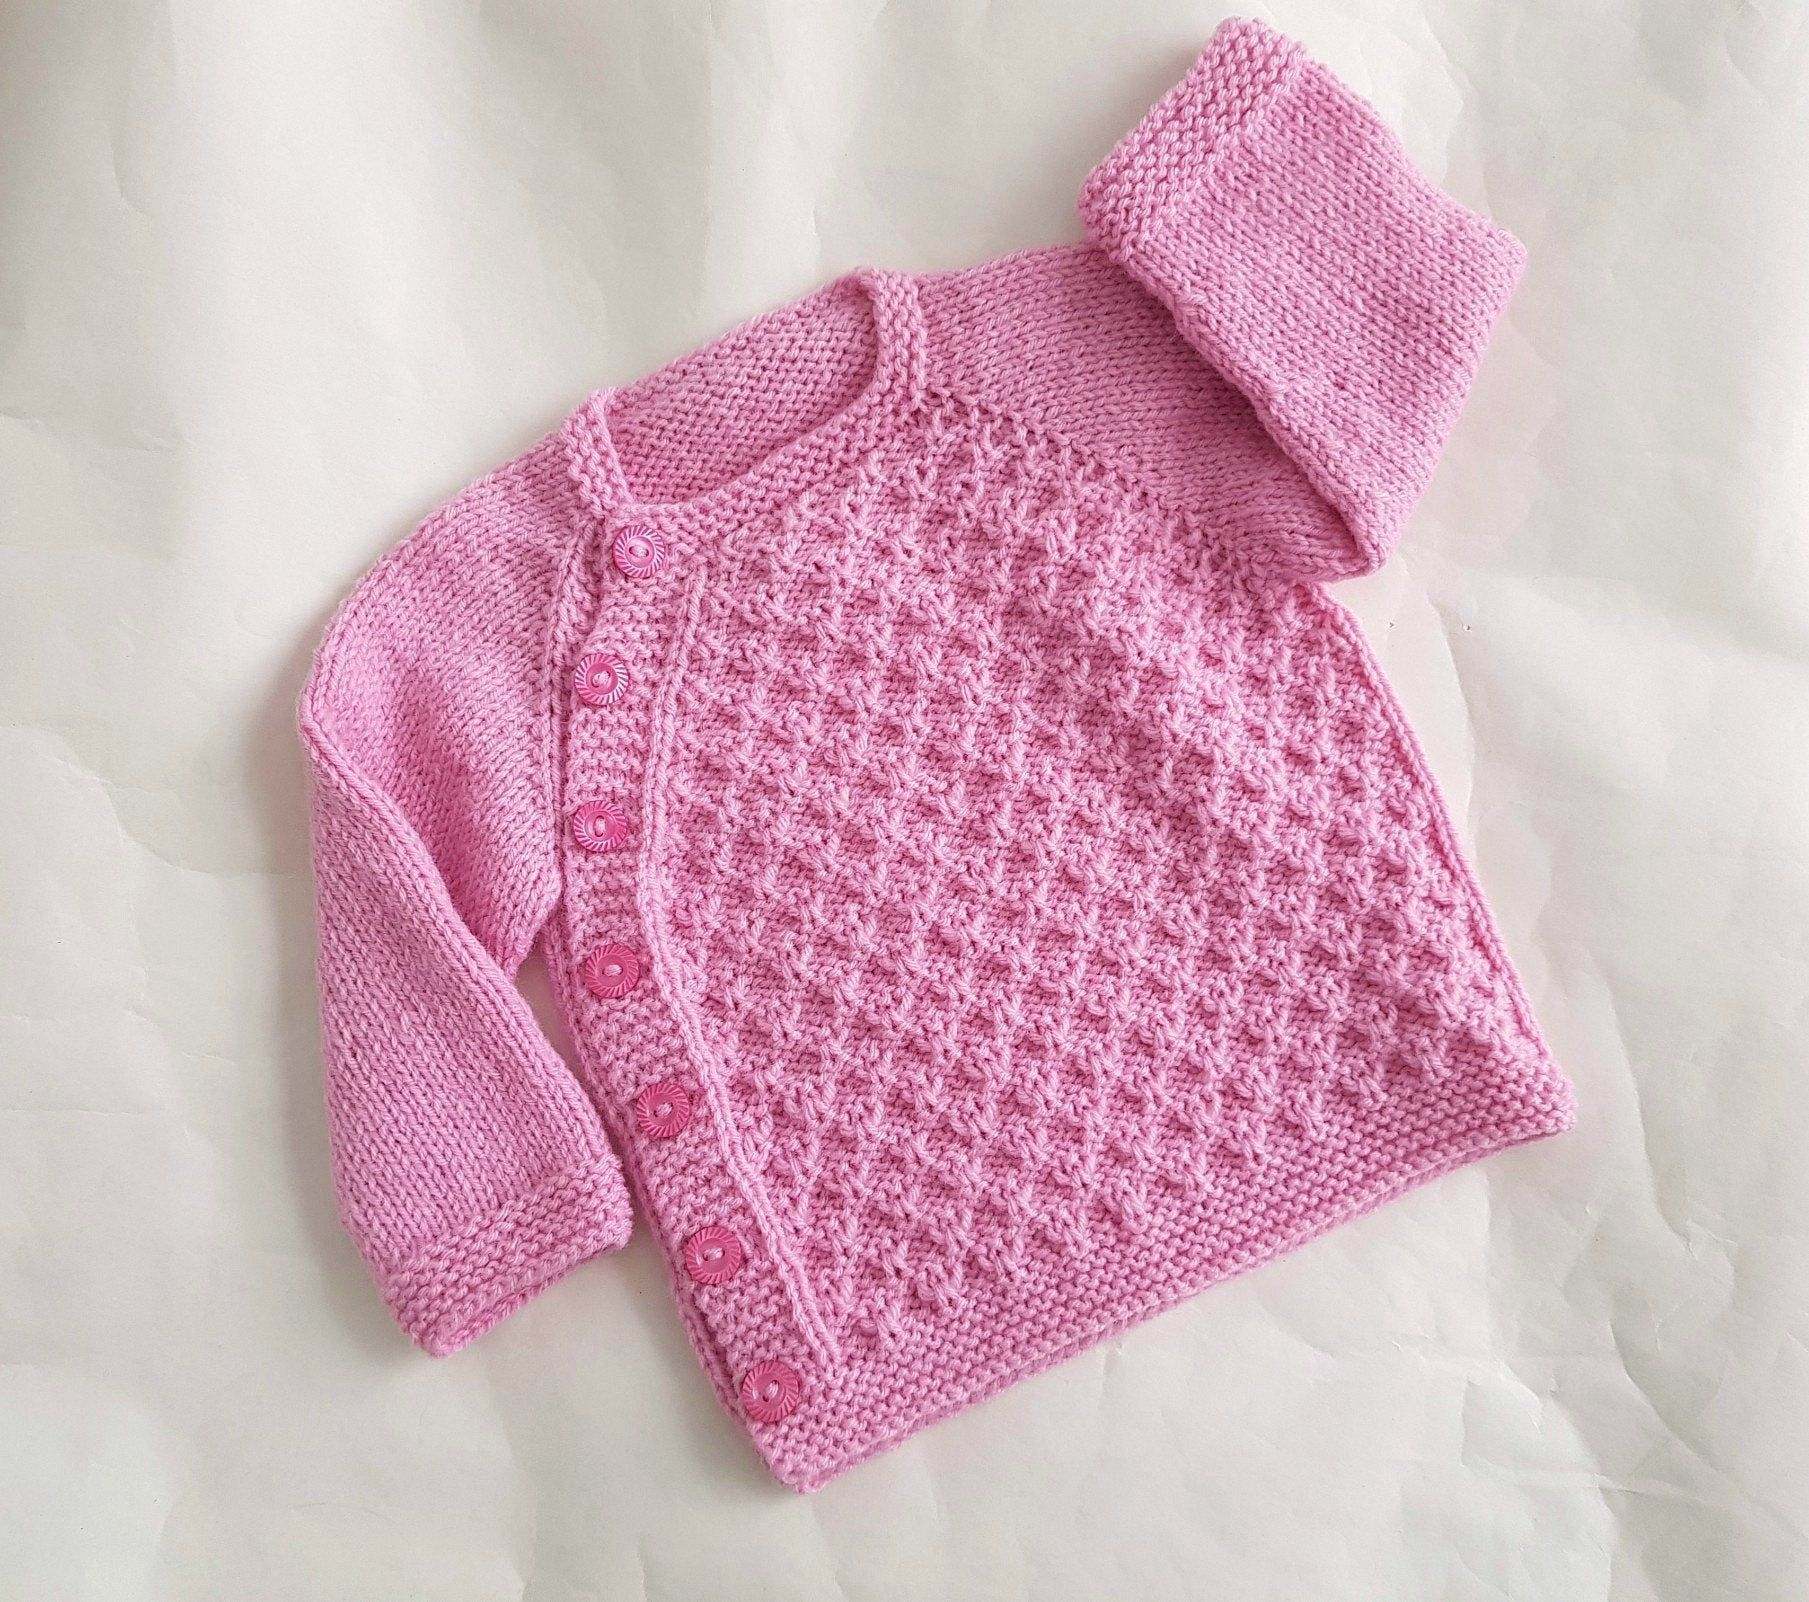 Baby Wool Cardigan gift Baby Gift Clothes Merino Wool Baby Cardigan Knitted Baby Cardigan Knitted baby clothes Baby Sweater